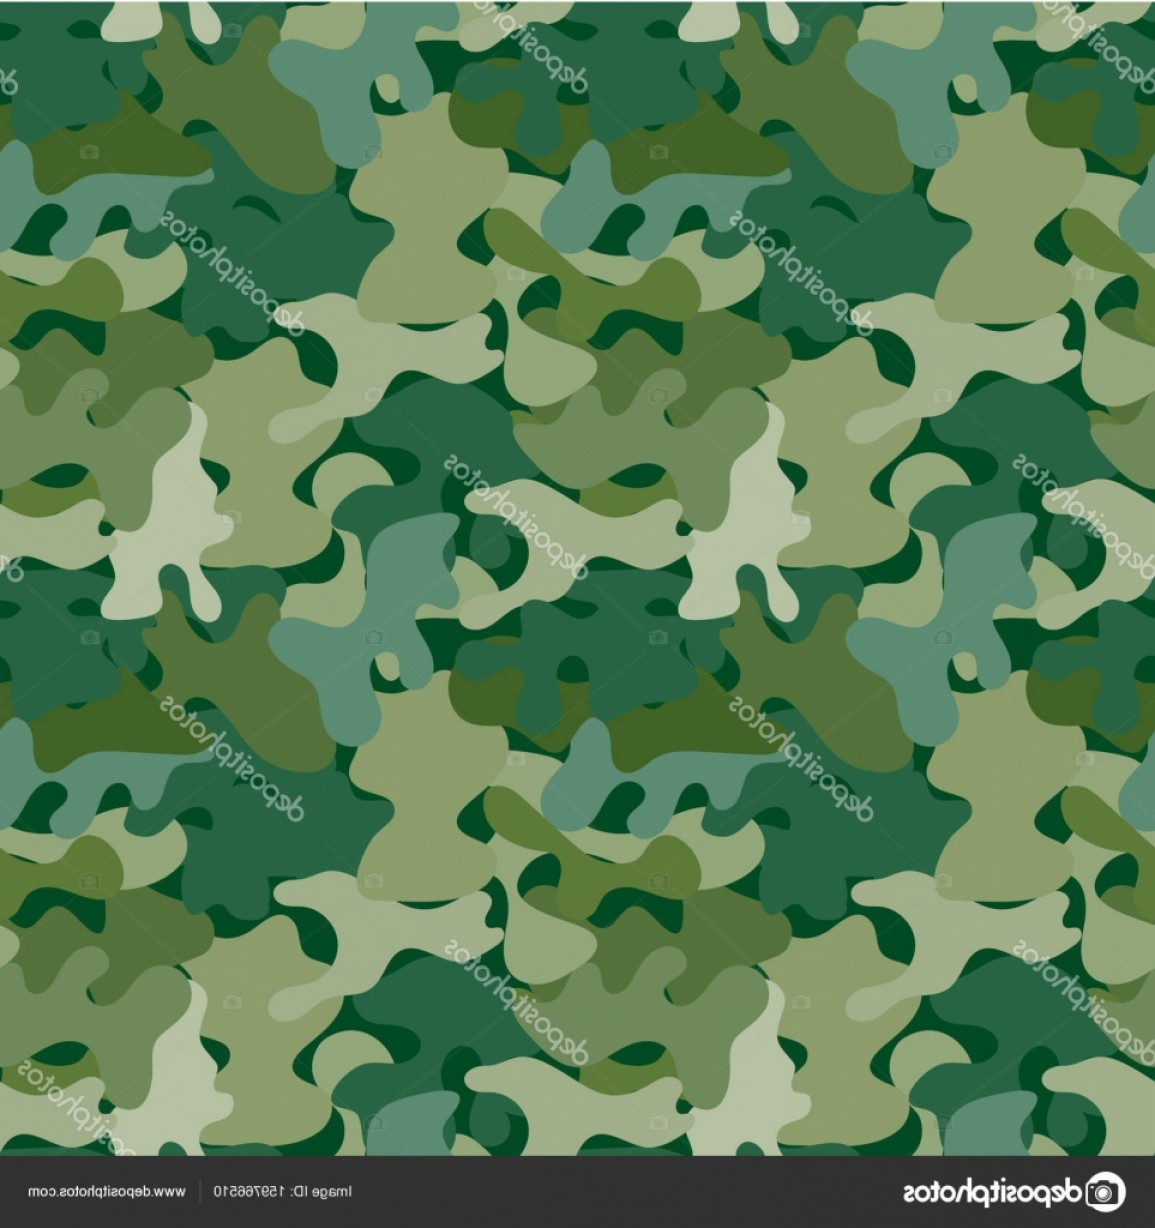 Army Camouflage Pattern Vector: Stock Illustration Vector Camouflage Seamless Pattern For